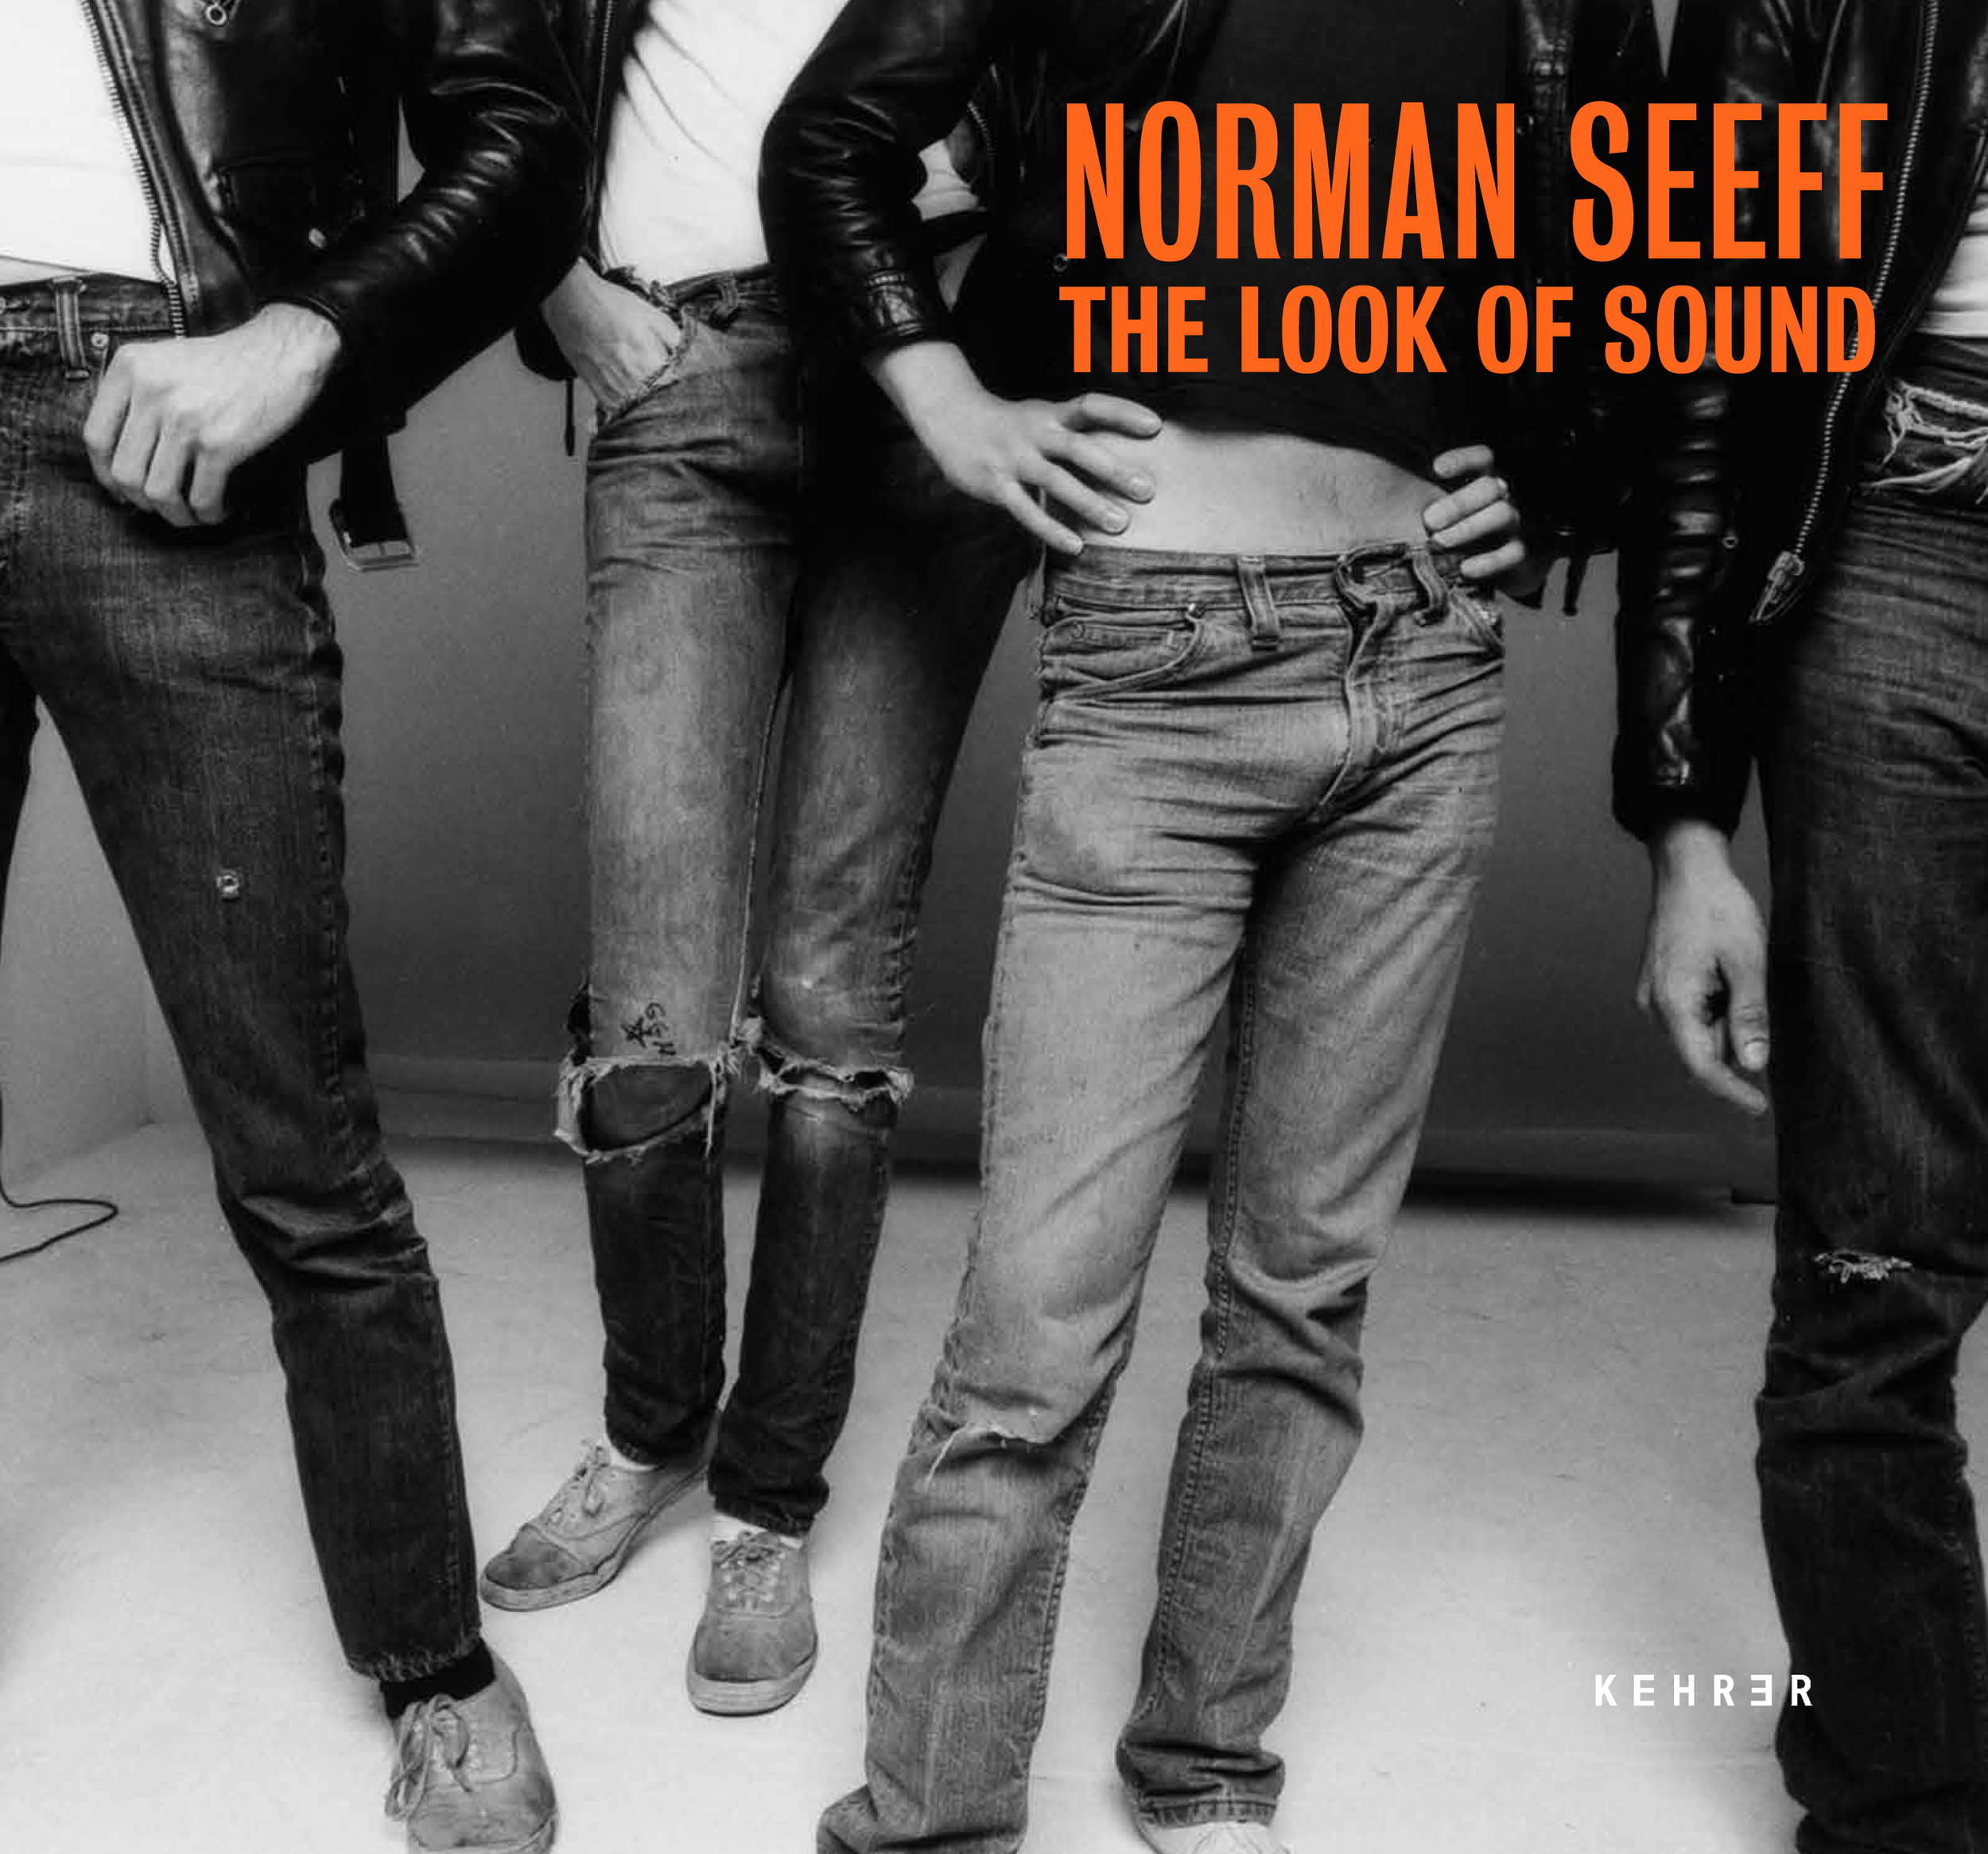 Norman Seeff The Look of Sound Kehrer Verlag Heidelberg  Editor: Alfried Wieczorek, Thomas Schirmböck  Texts: Jasen Emmons, Thomas Schirmböck Photos: Norman Seeff  Hardcover 24 x 22 cm, 240 pages 153 color - and b/w-ills. German/English 29,95 €